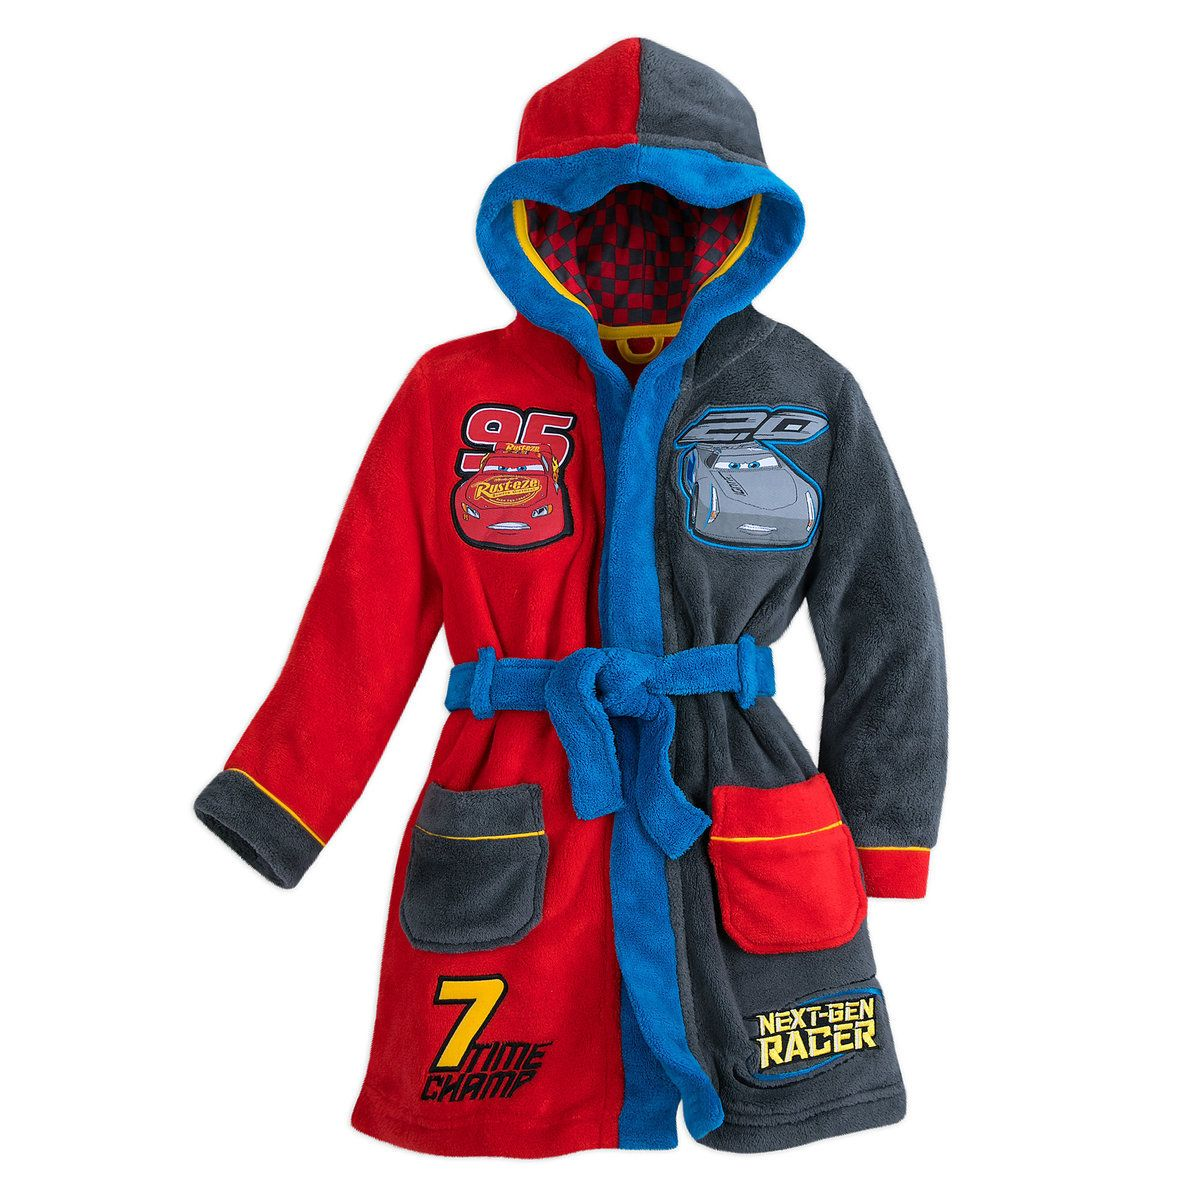 lightning mcqueen and jackson storm robe for boys  cars 3